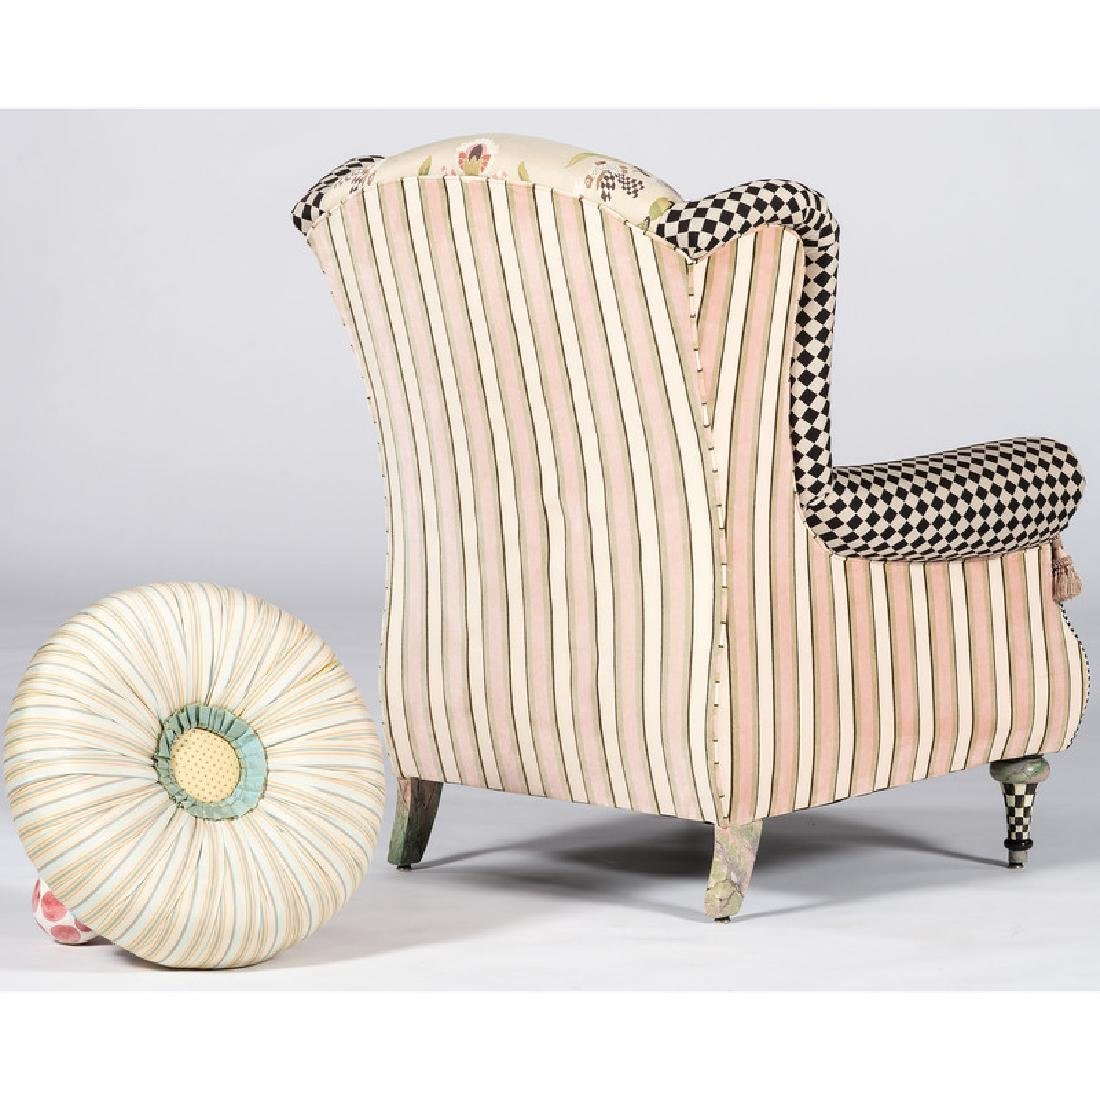 Mackenzie-Childs Upholstered Armchair and Ottoman - 2